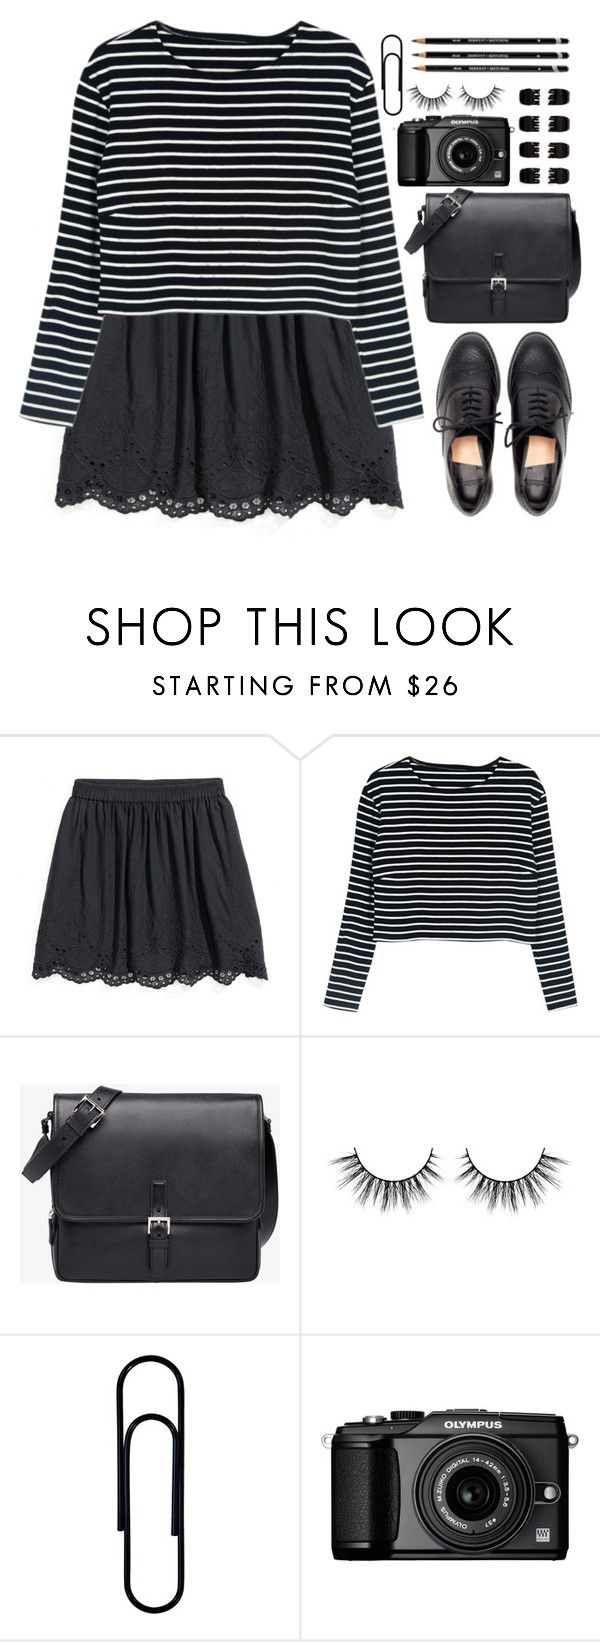 """Noonie Bao - Criminal Love"" by annaclaraalvez ❤ liked on Polyvore featuring WithChic, Prada, Olympus and Forever 21"